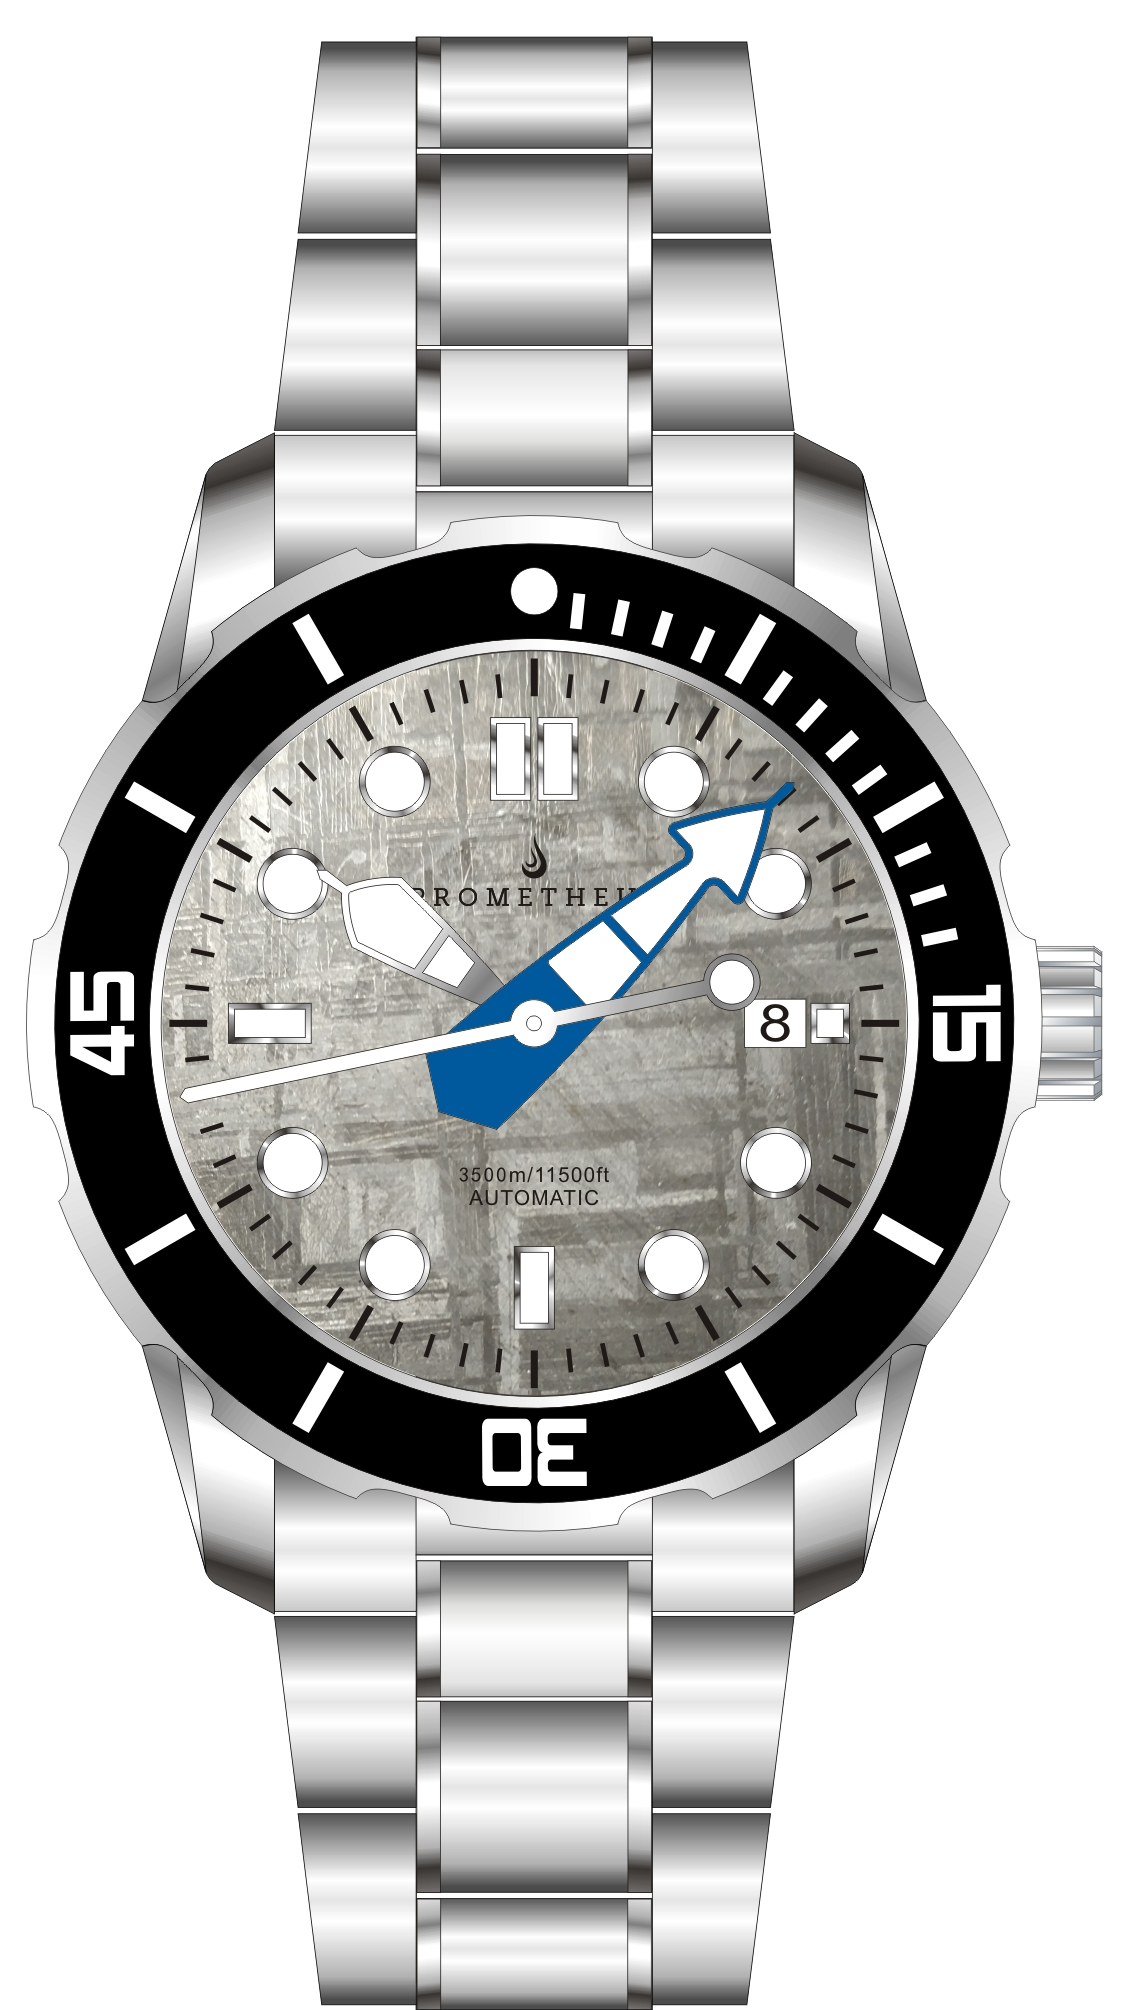 Pre-Order Prometheus Poseidon Meteorite Dial Modern Diver Hands Blue Date 3500m Diver Watch Automatic Miyota 9015